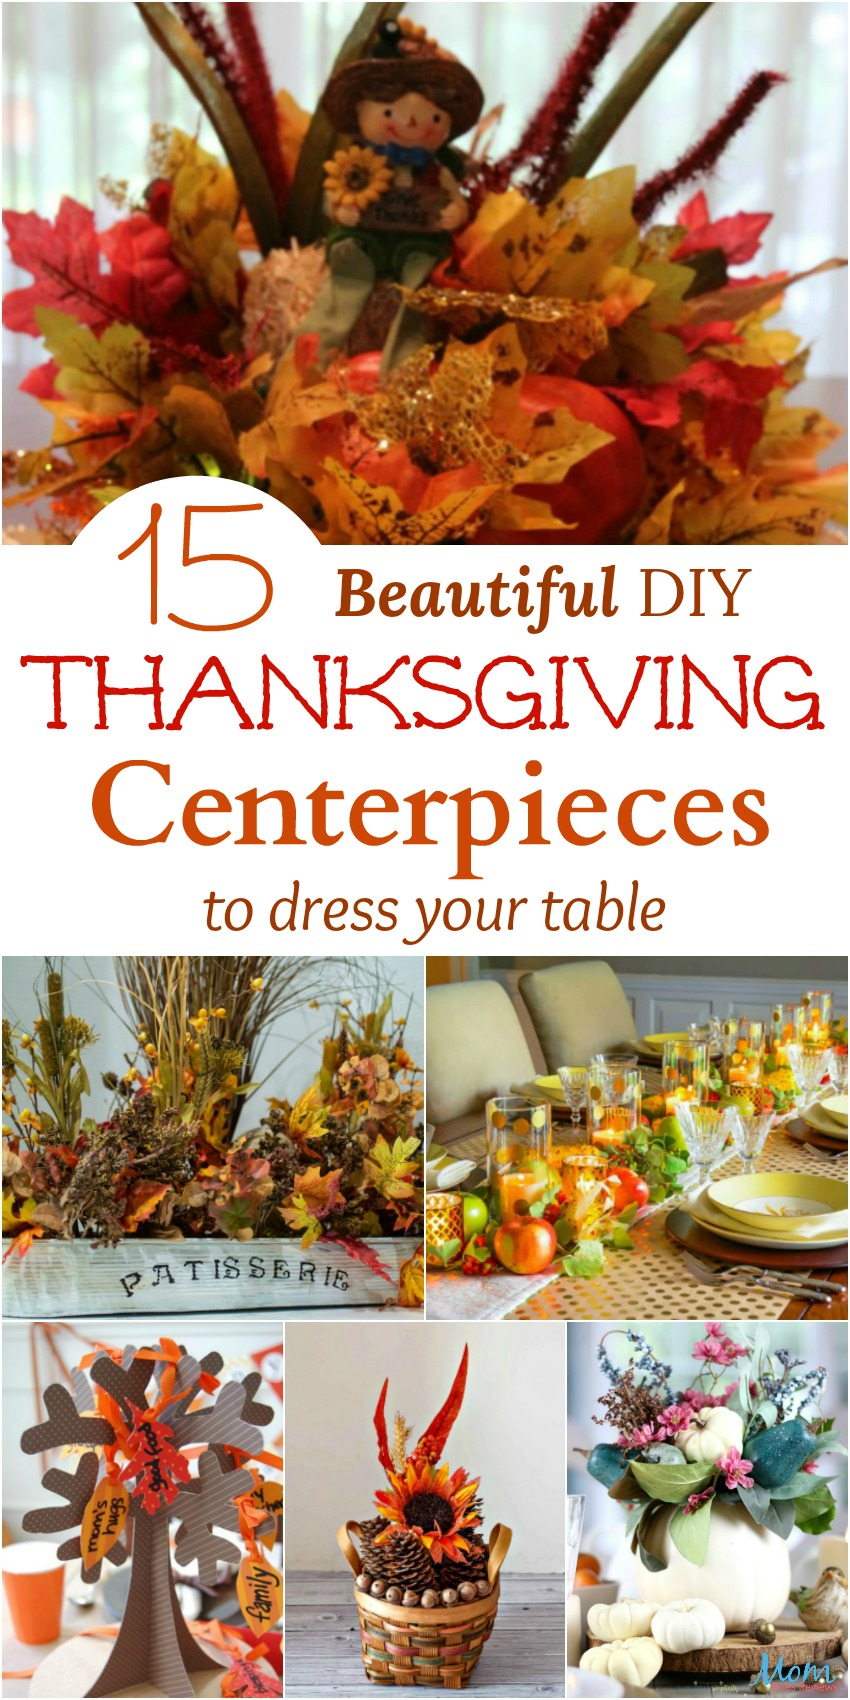 15 Beautiful DIY Thanksgiving Centerpieces to Dress Your Table